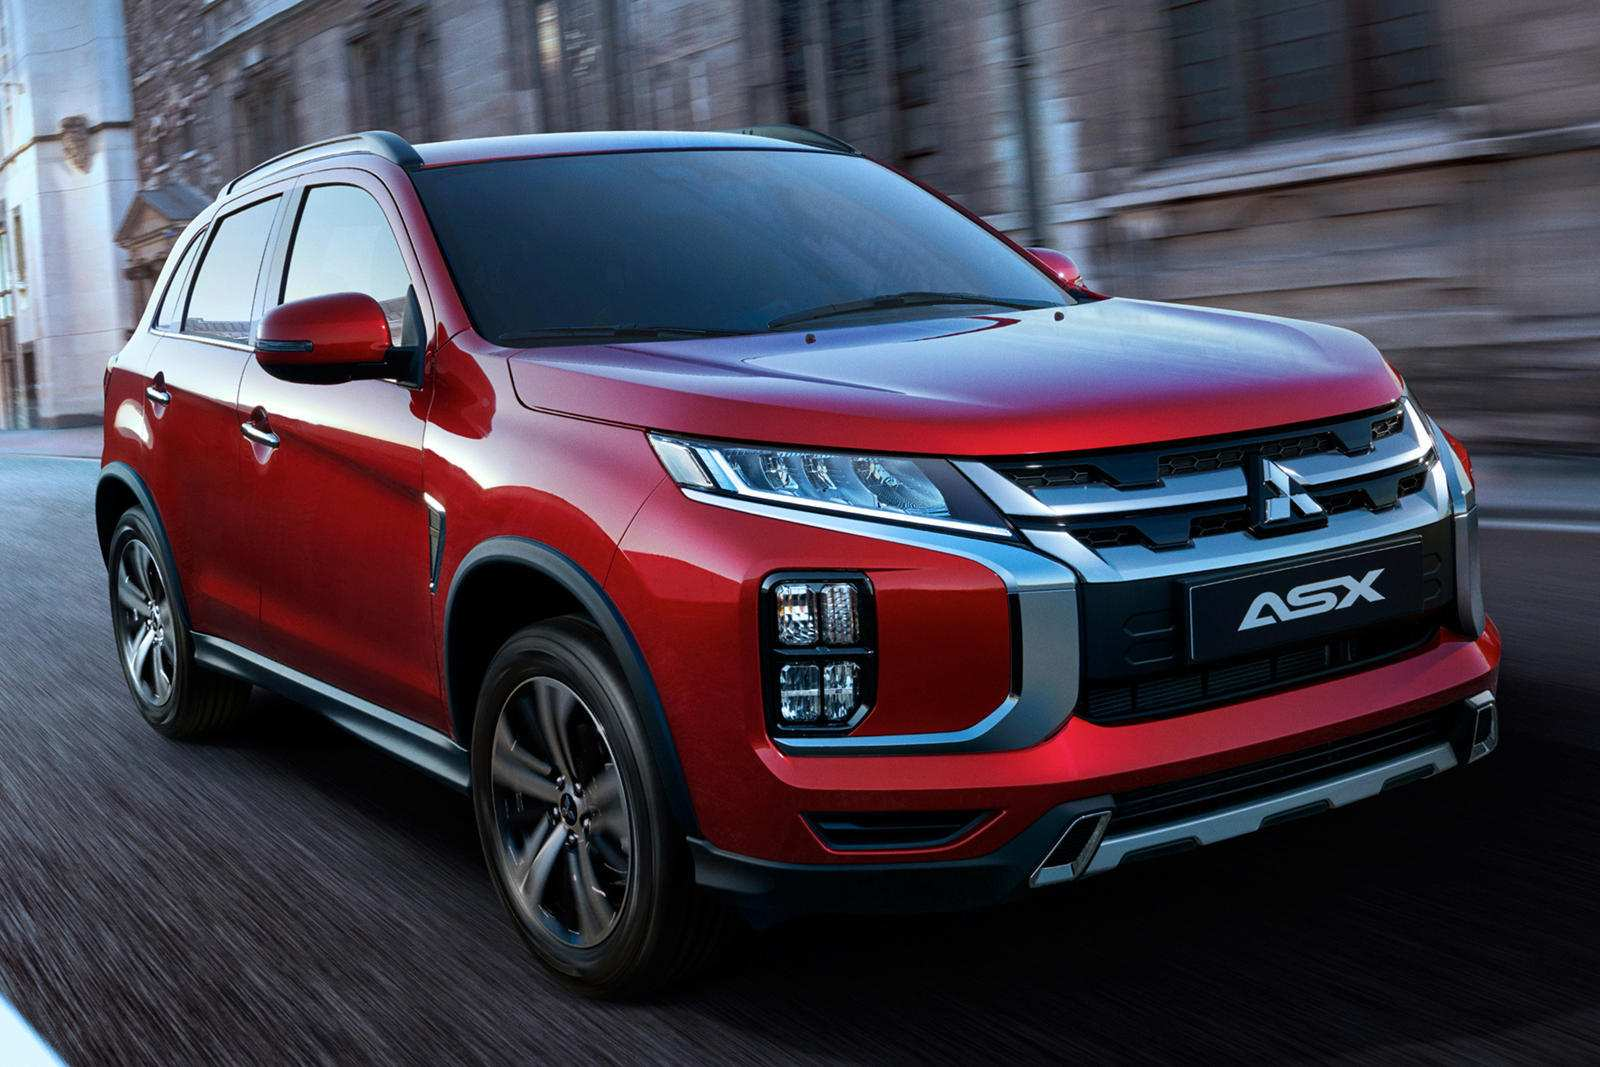 91 A Mitsubishi Asx 2020 Test Drive Price Design And Review